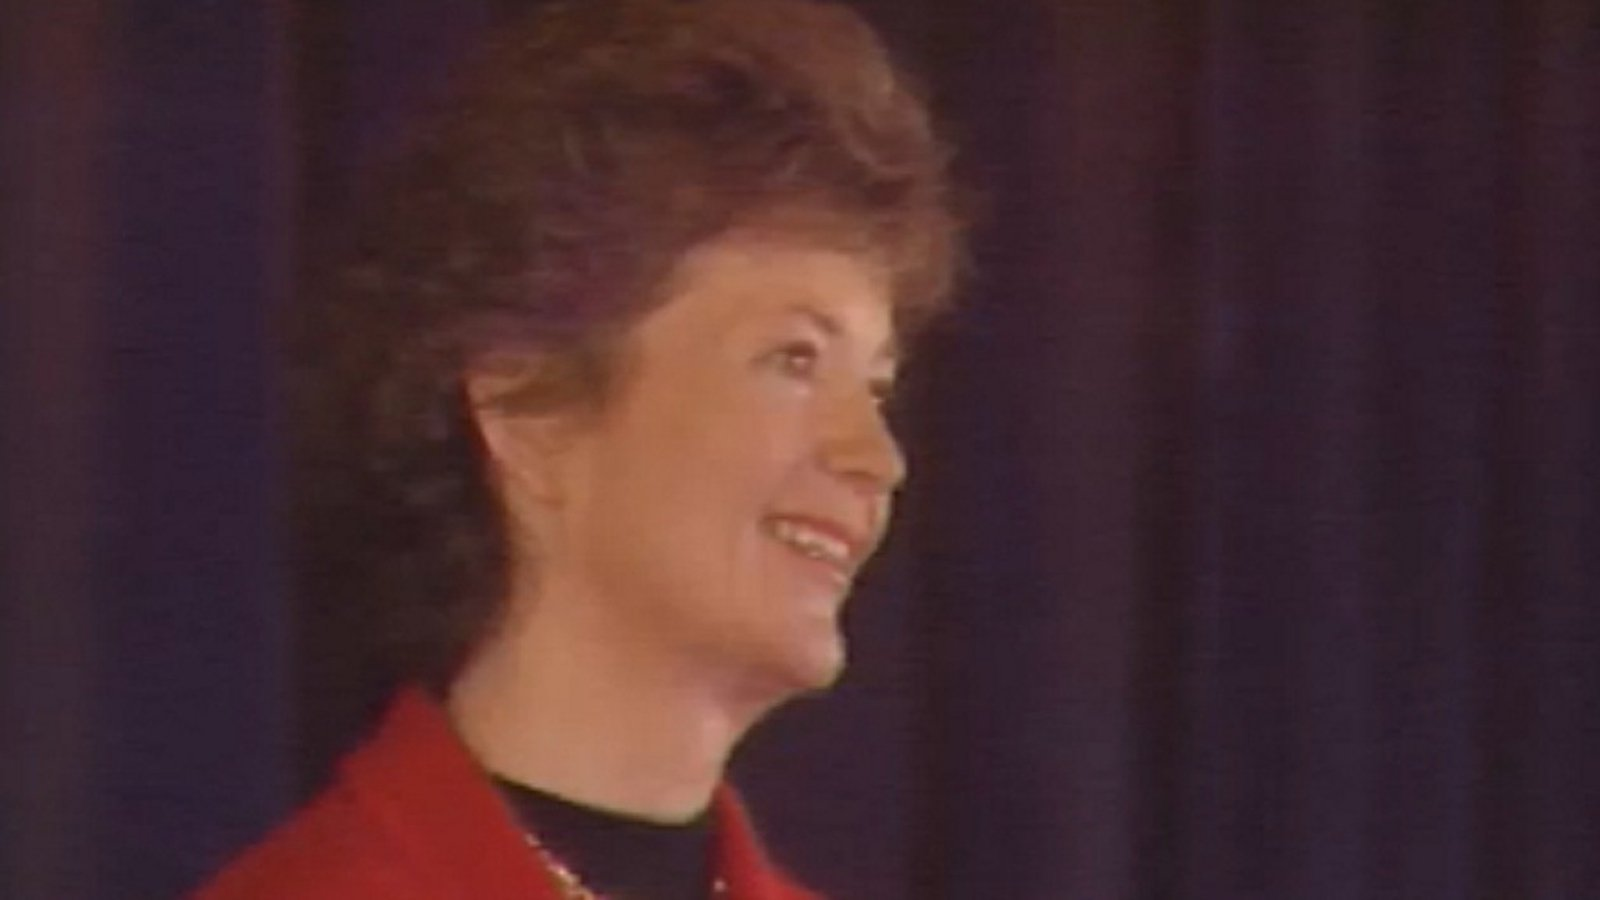 Image - President Mary Robinson in the 1990s. Robinston frequently mentioned in the Famine during her human rights and diaspora-related work